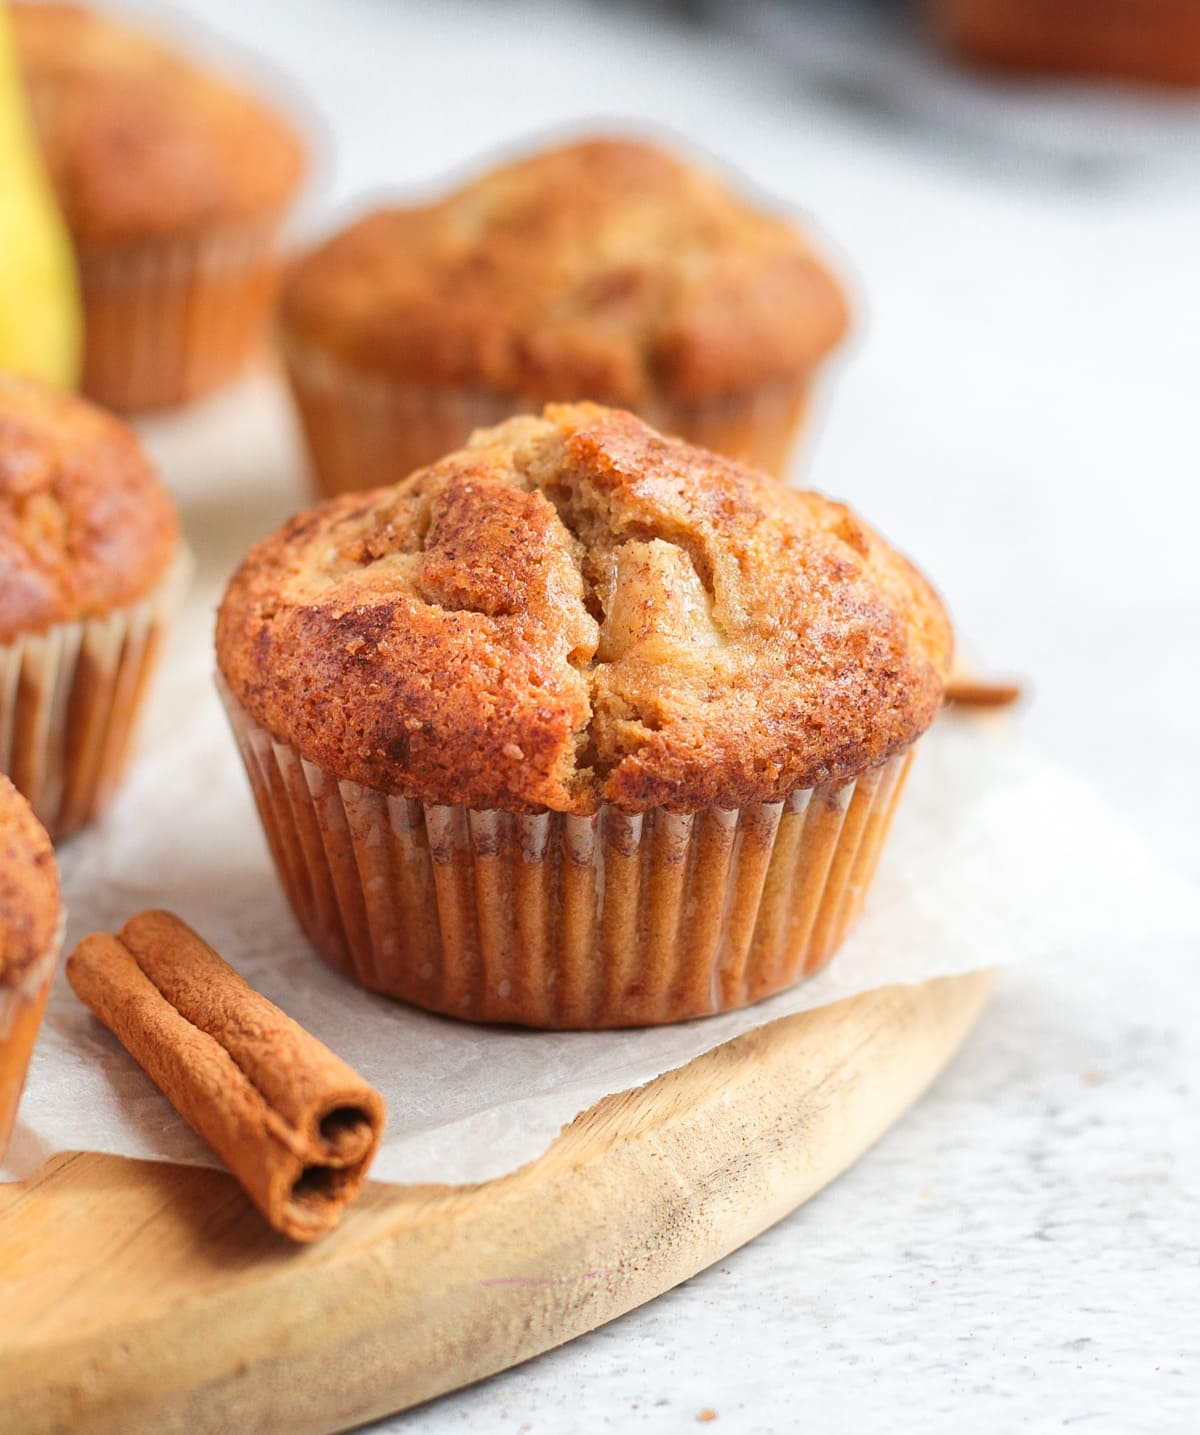 One muffin on a round wooden board over baking paper